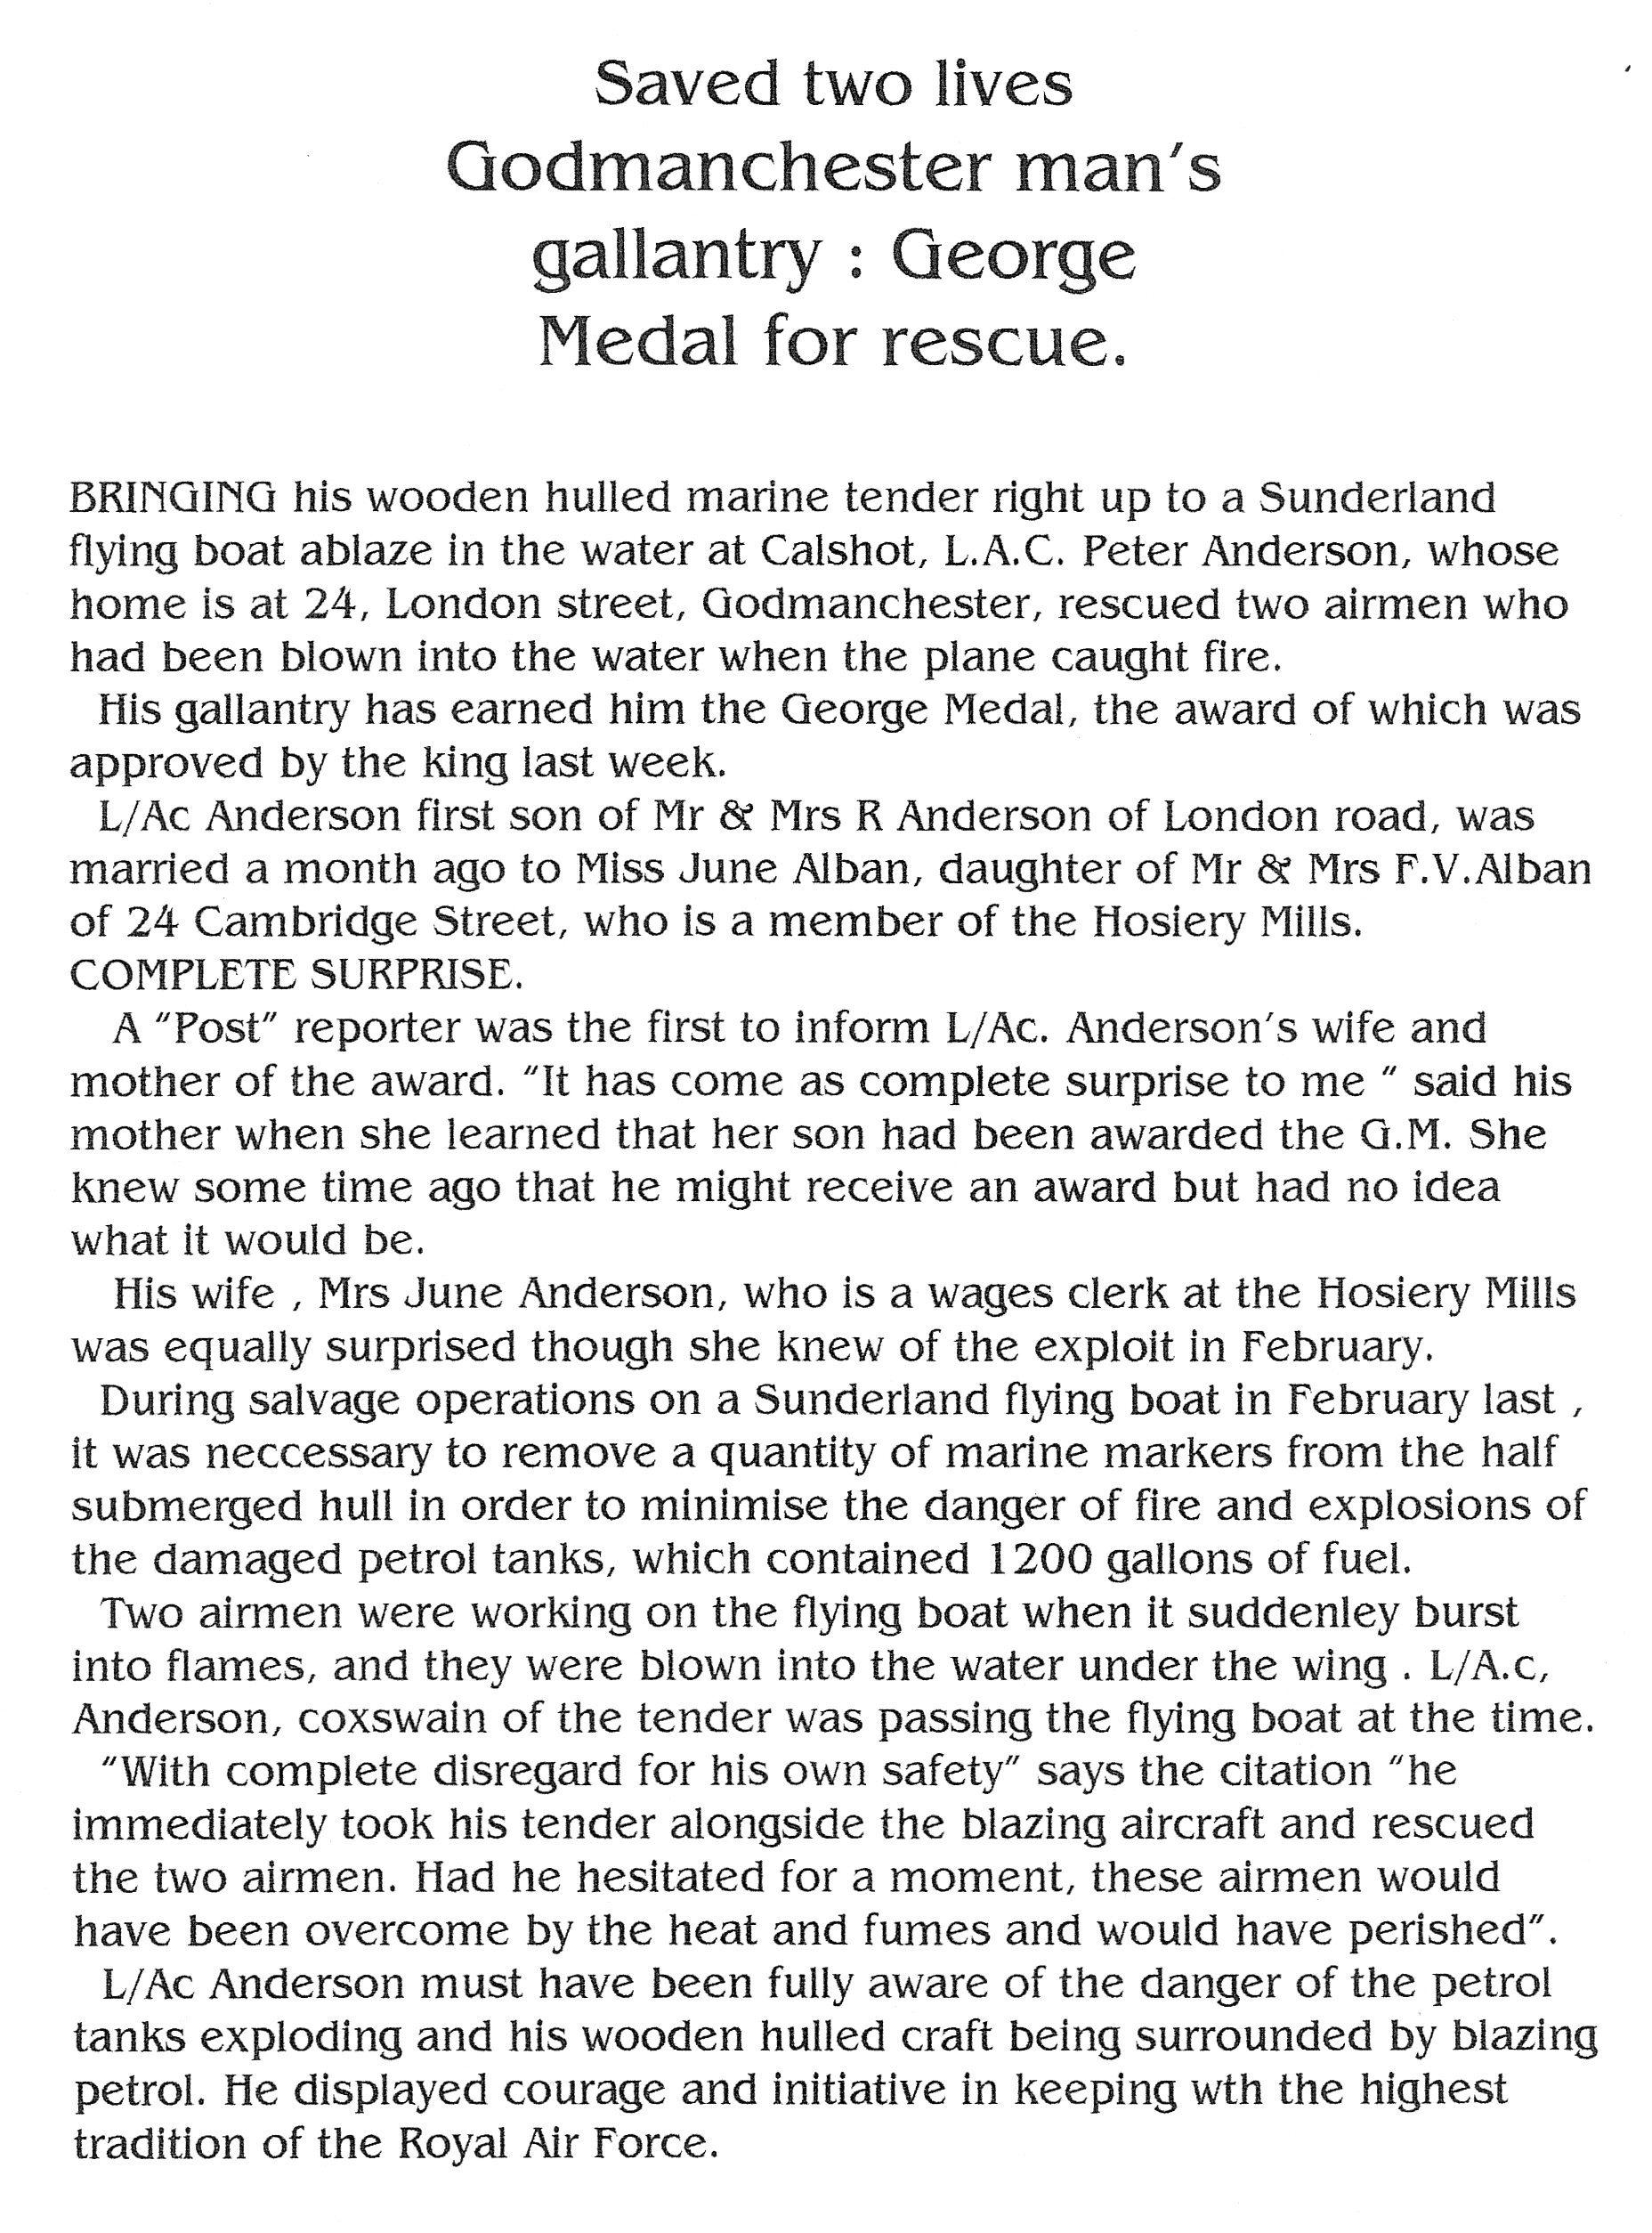 Peter 'Andy' Anderson awarded the George Medal for rescue